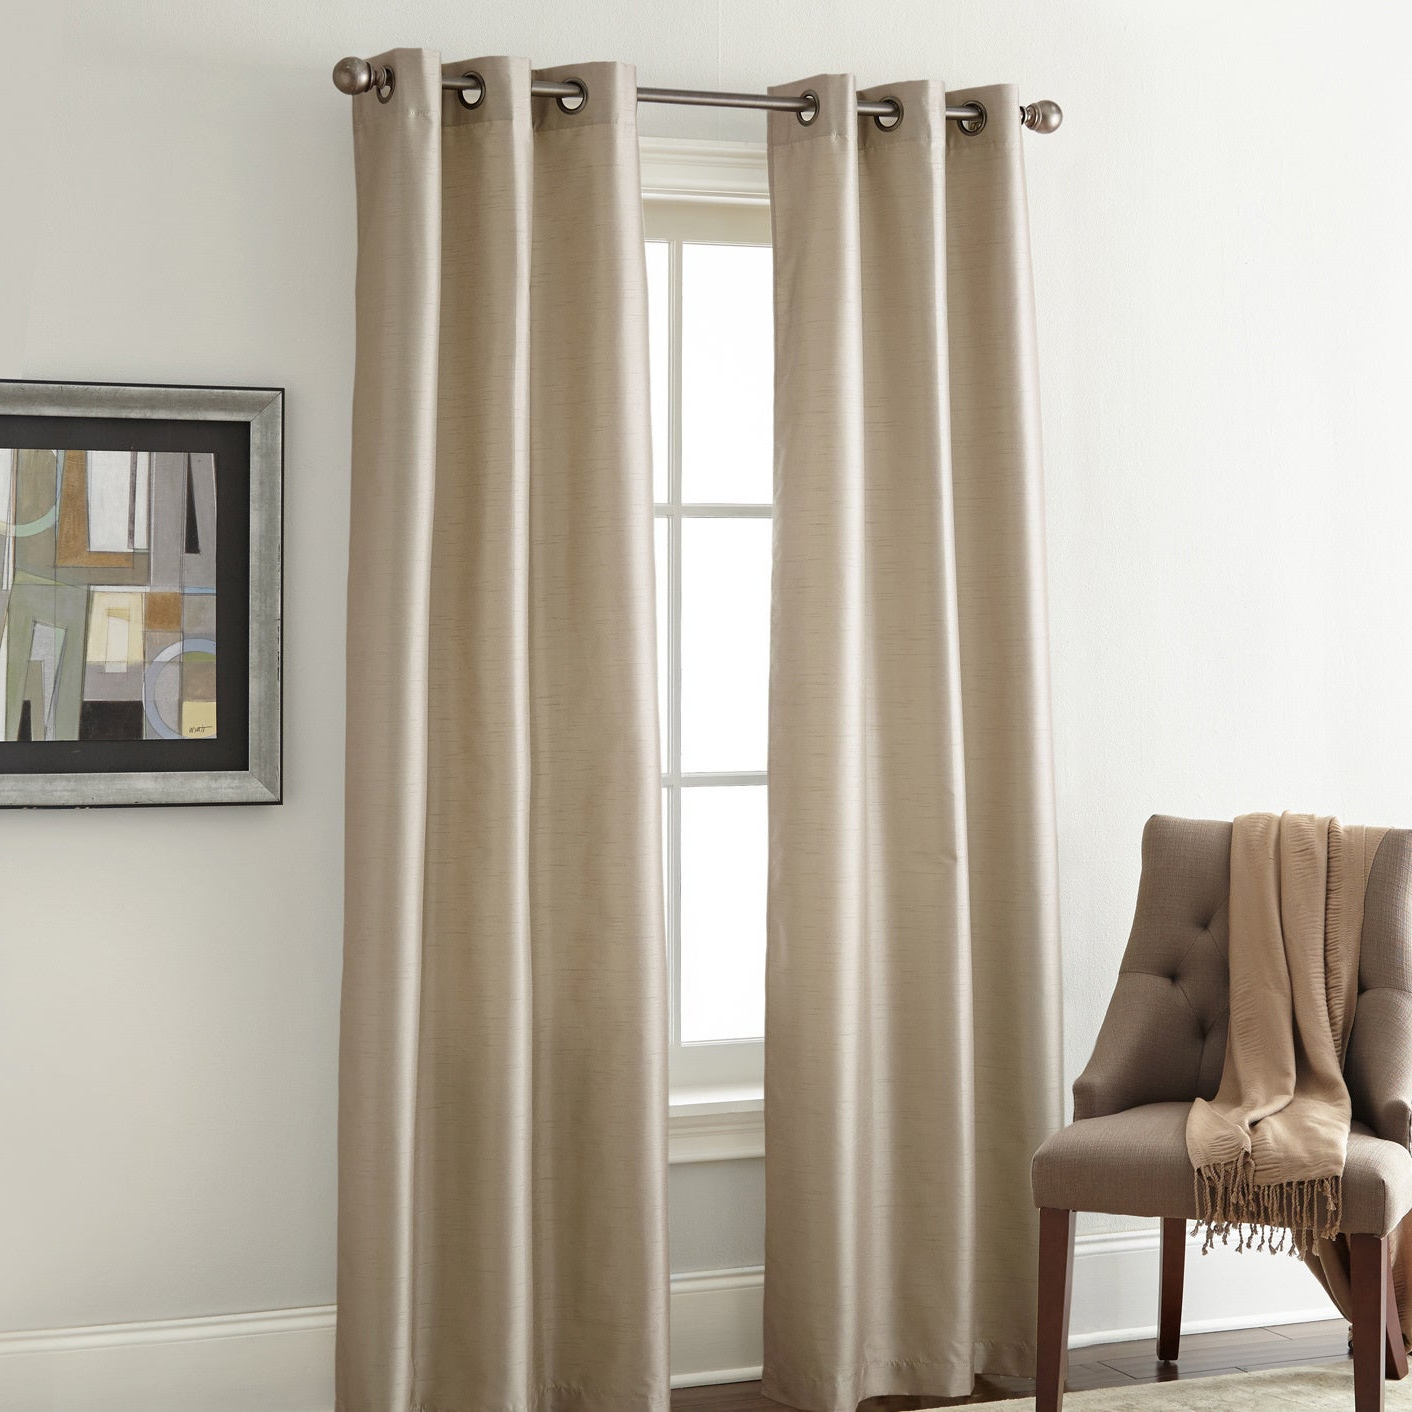 Most Popular Overseas Faux Silk Blackout Curtain Panel Pairs With Amrapur Overseas Faux Silk Blackout Curtain Panel Pair (Gallery 5 of 20)